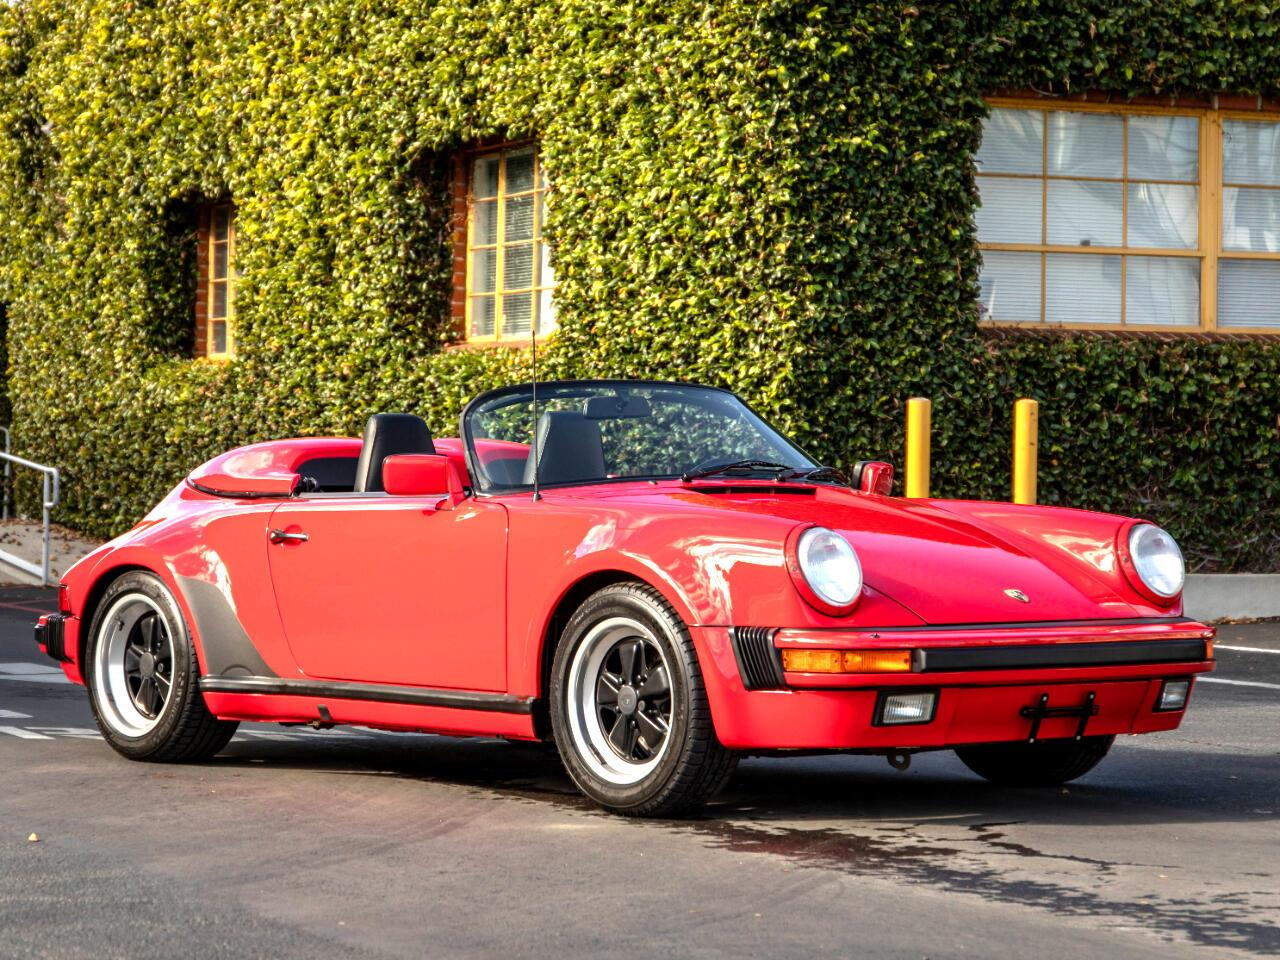 1989 Porsche 911 Speedster (CC-1337662) for sale in Marina Del Rey, California